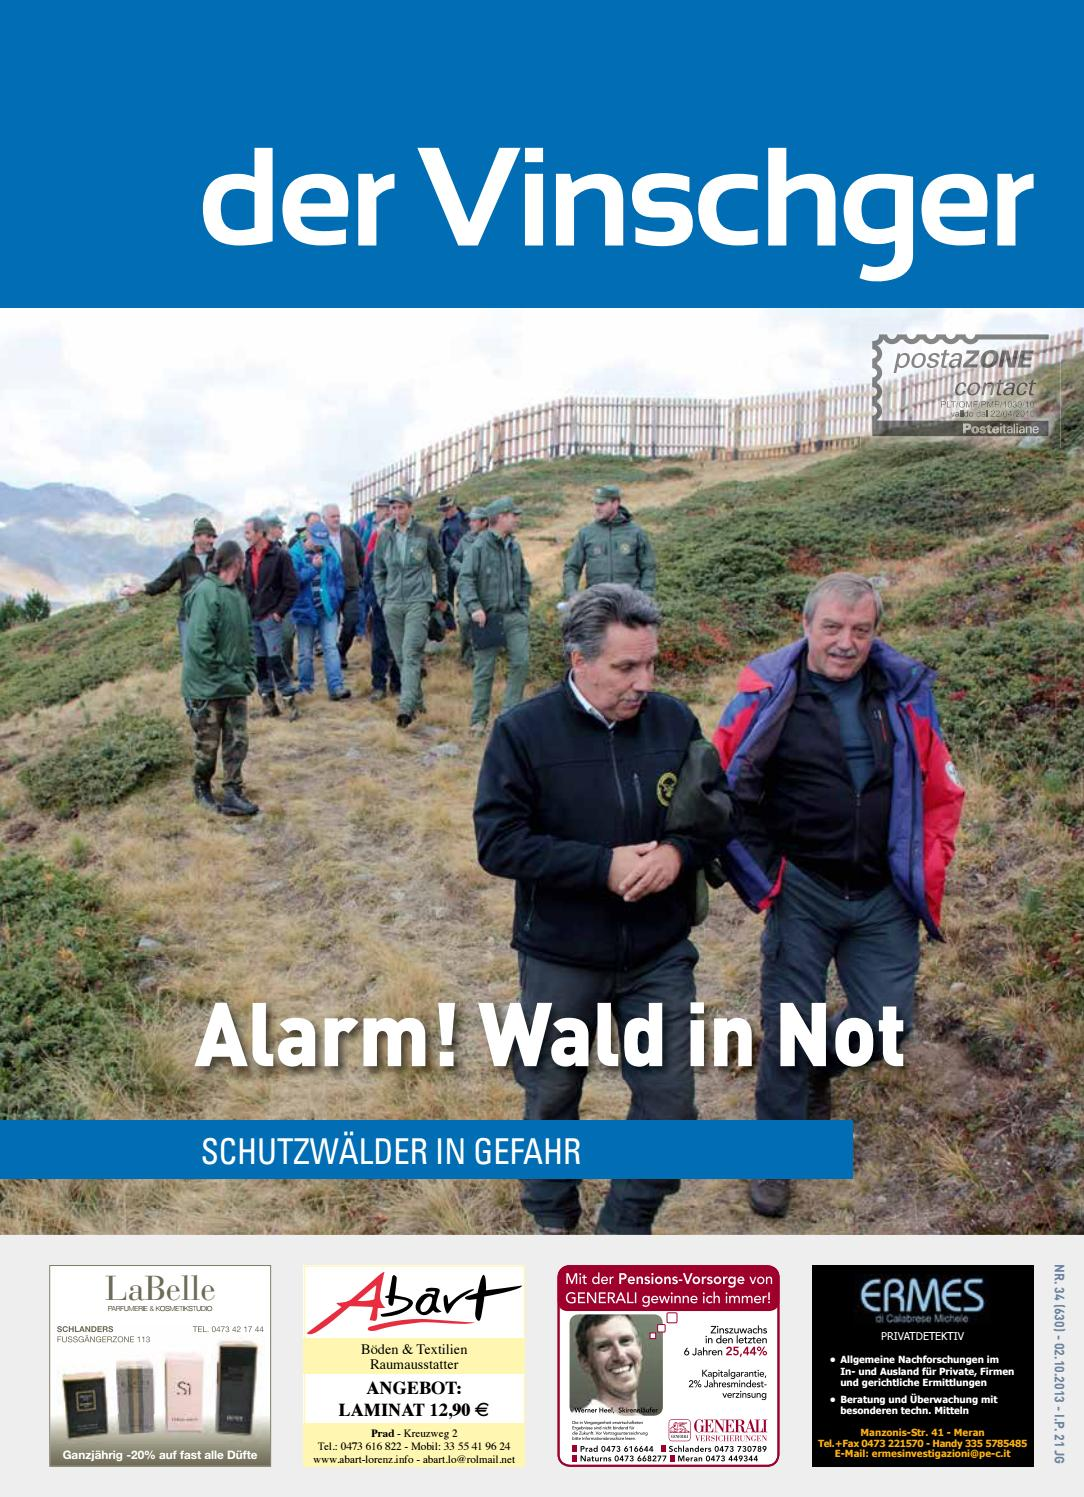 Alarm! Wald in Not by piloly.com GmbH - issuu